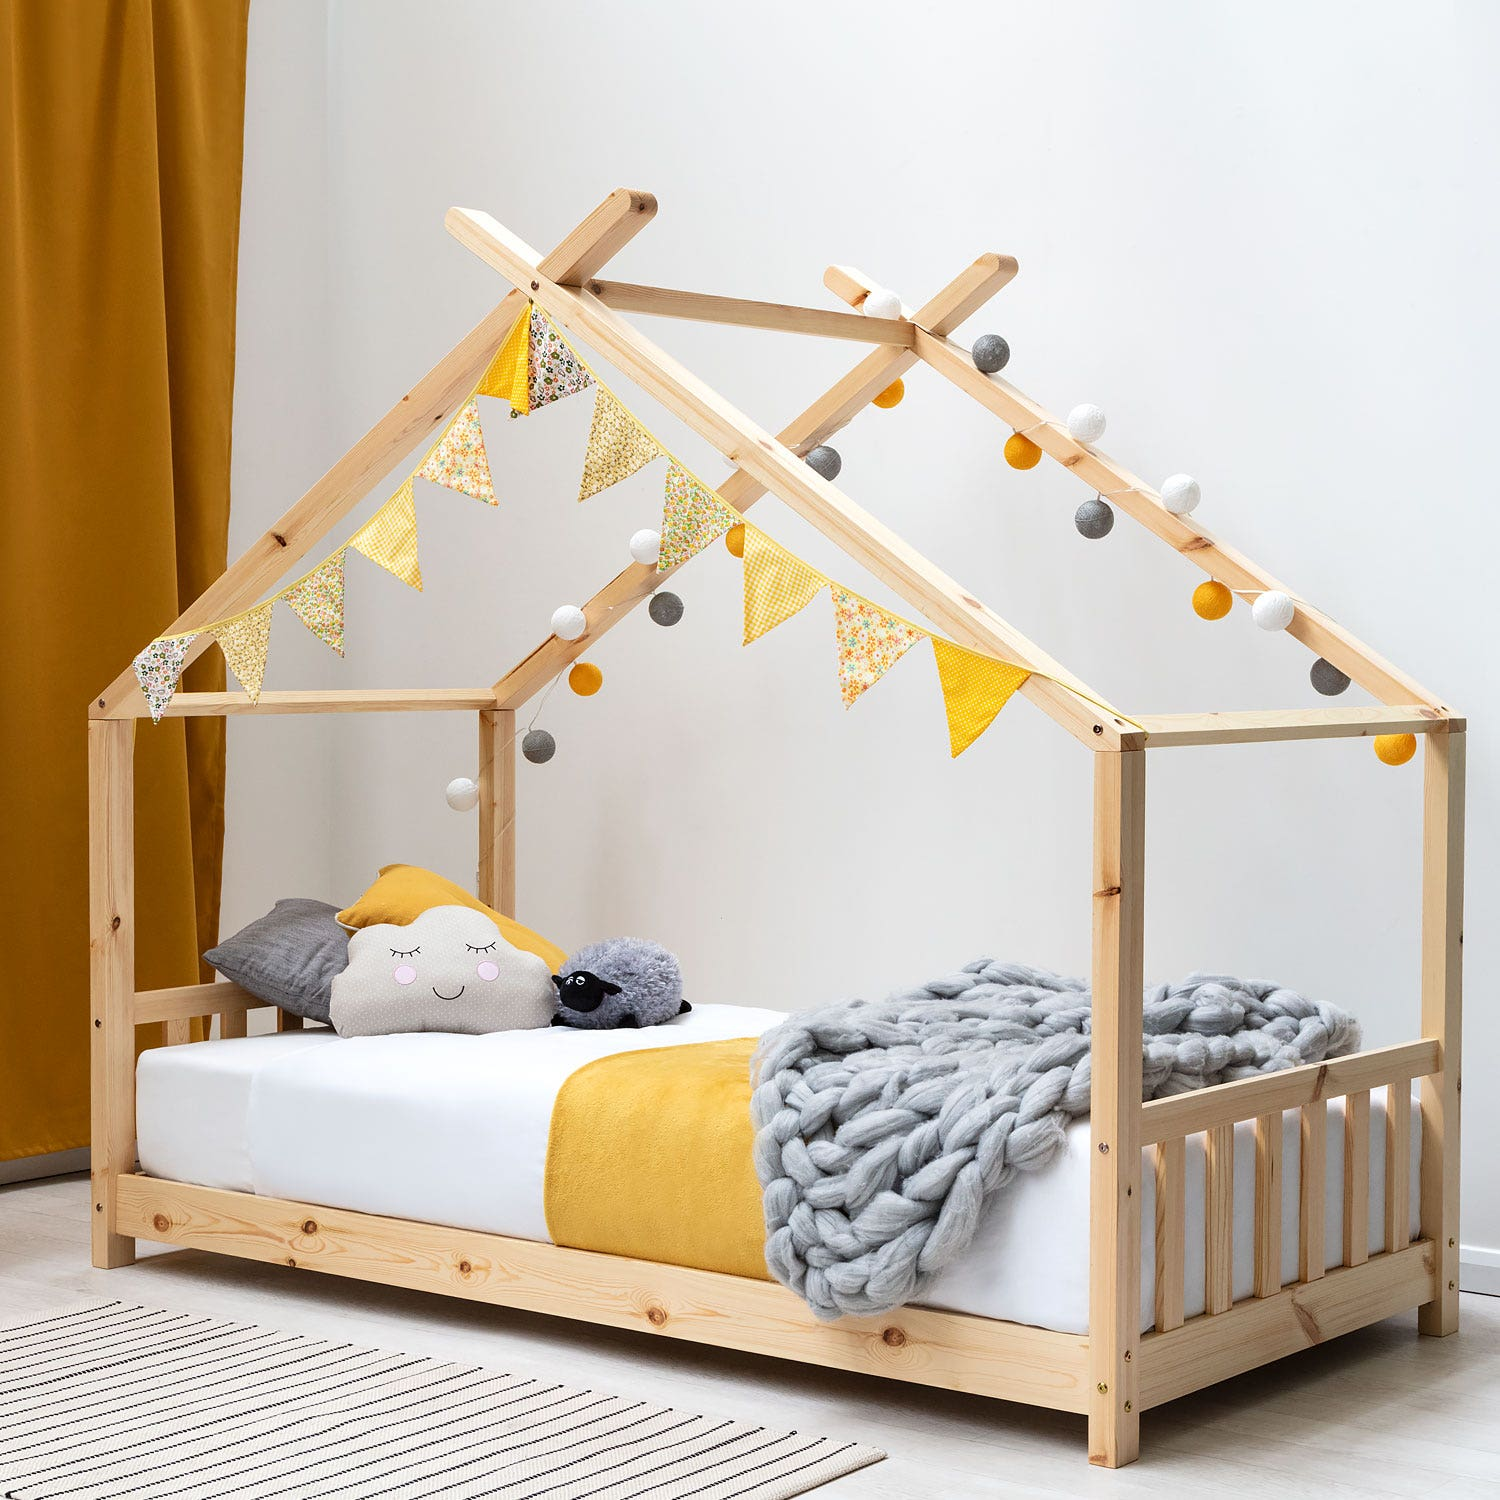 Kids Pine Wooden House Style Canopy Bed Frame Single 3ft Crazypricebeds Com